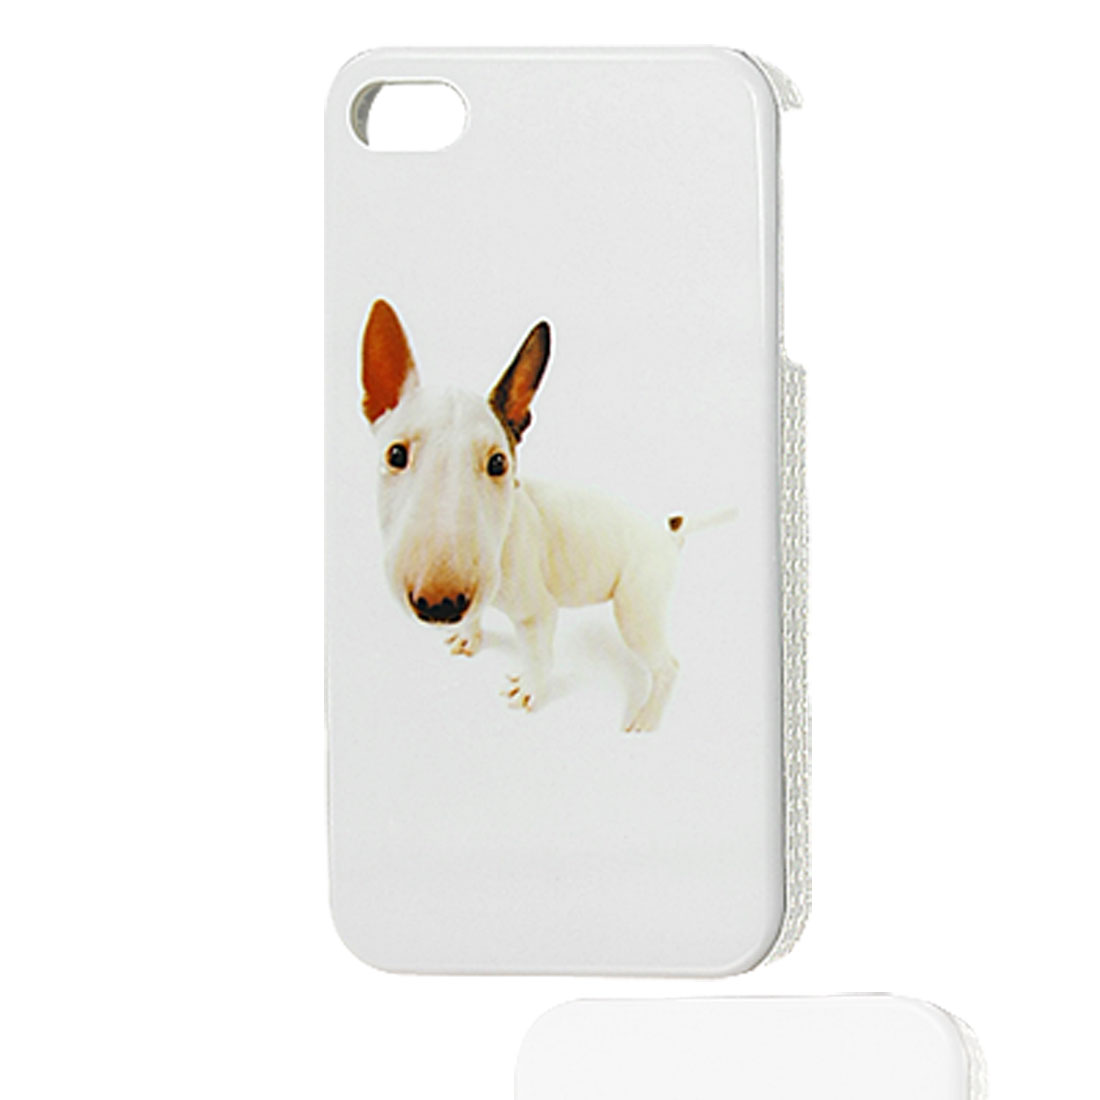 Hard Plastic Dog Pattern Smmoth IMD White Back Case for iPhone 4 4G 4S